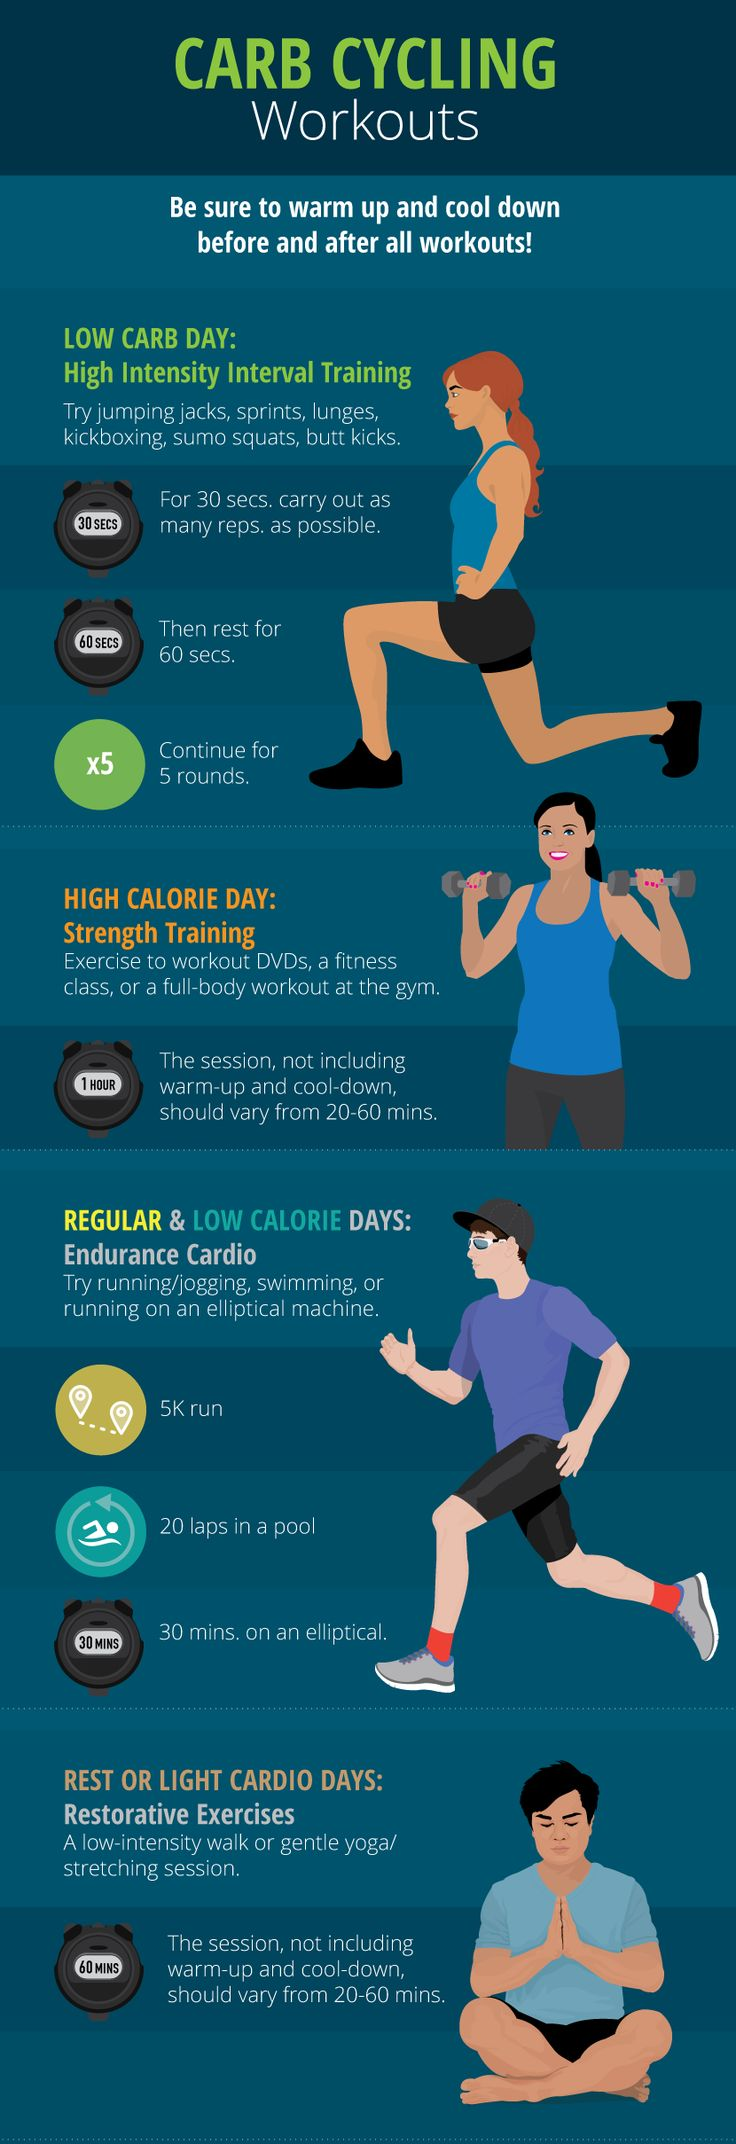 Carb Cycling Workouts - Carb Cycling for Weight Loss and Improved Fitness